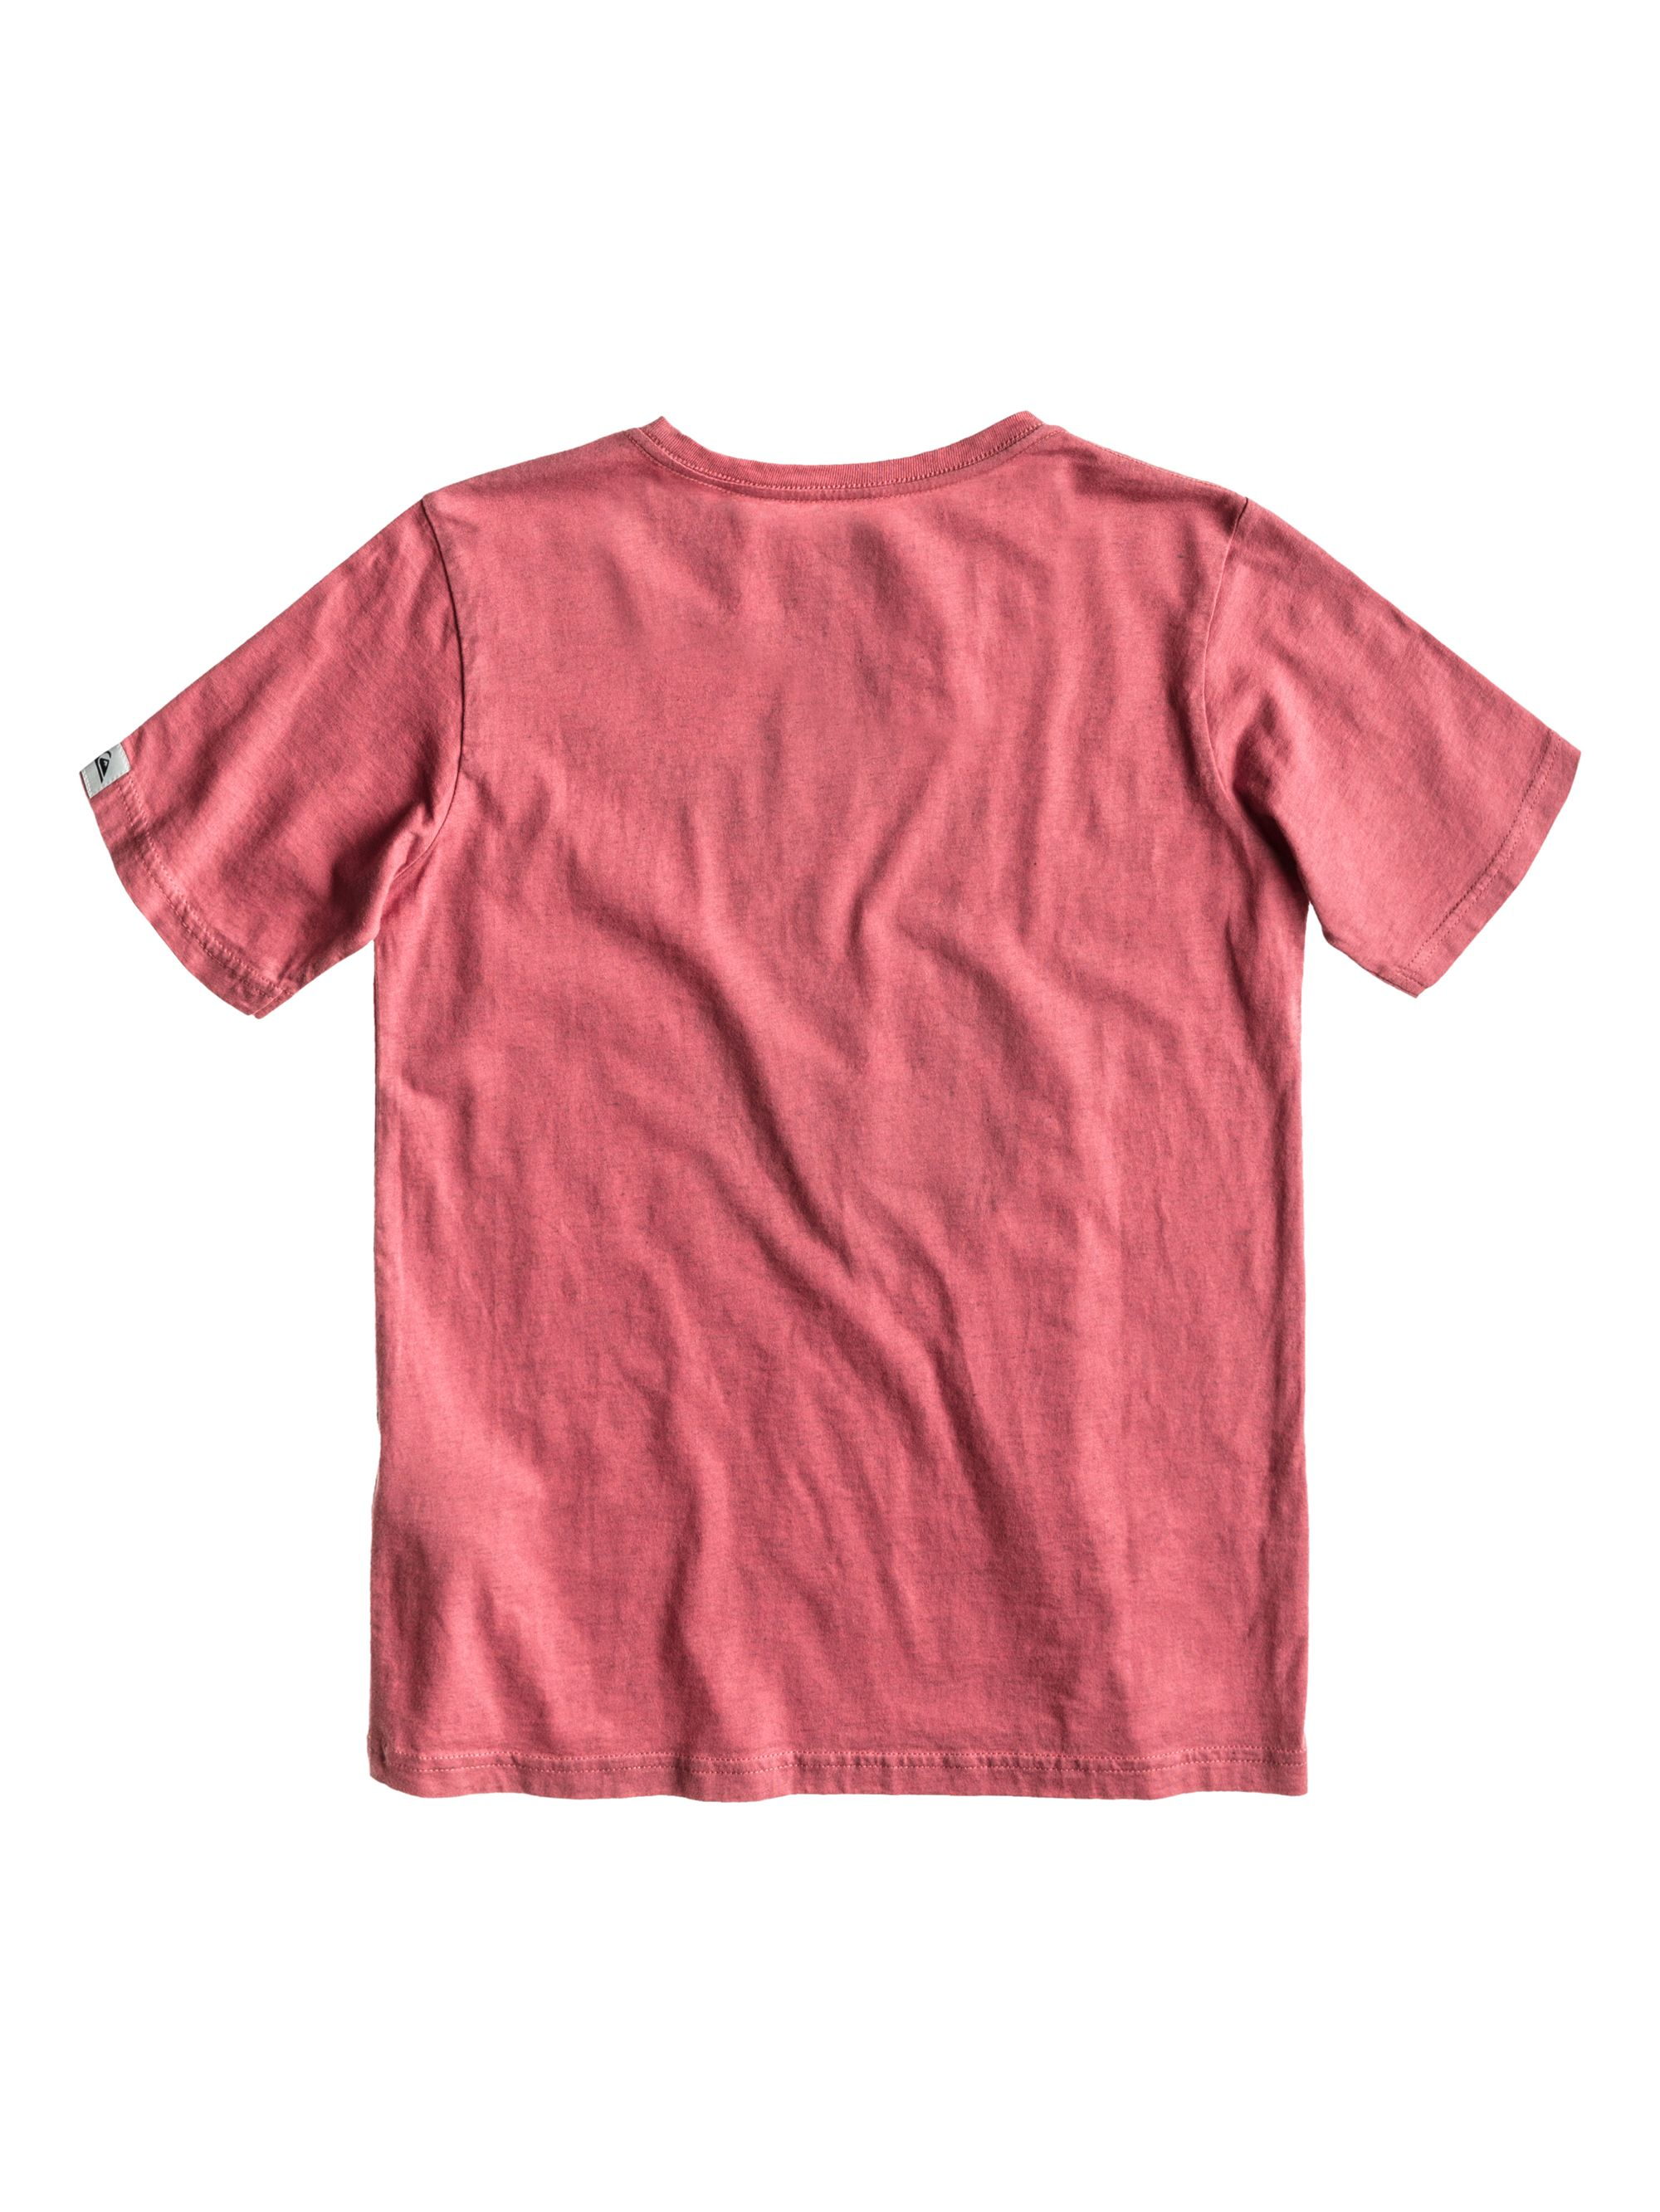 Boys new marle  bb5 t-shirt